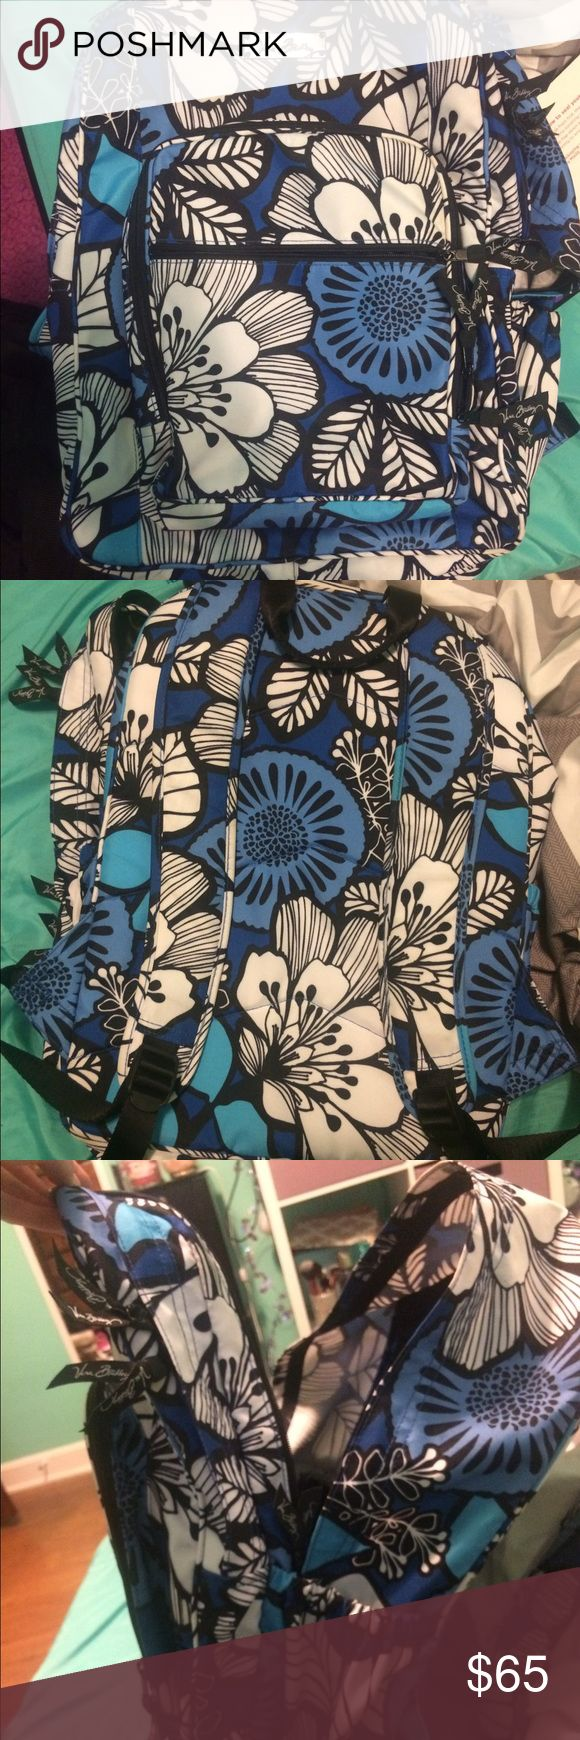 Vera Bradley backpack Floral blue and white backpack Vera Bradley Bags Backpacks